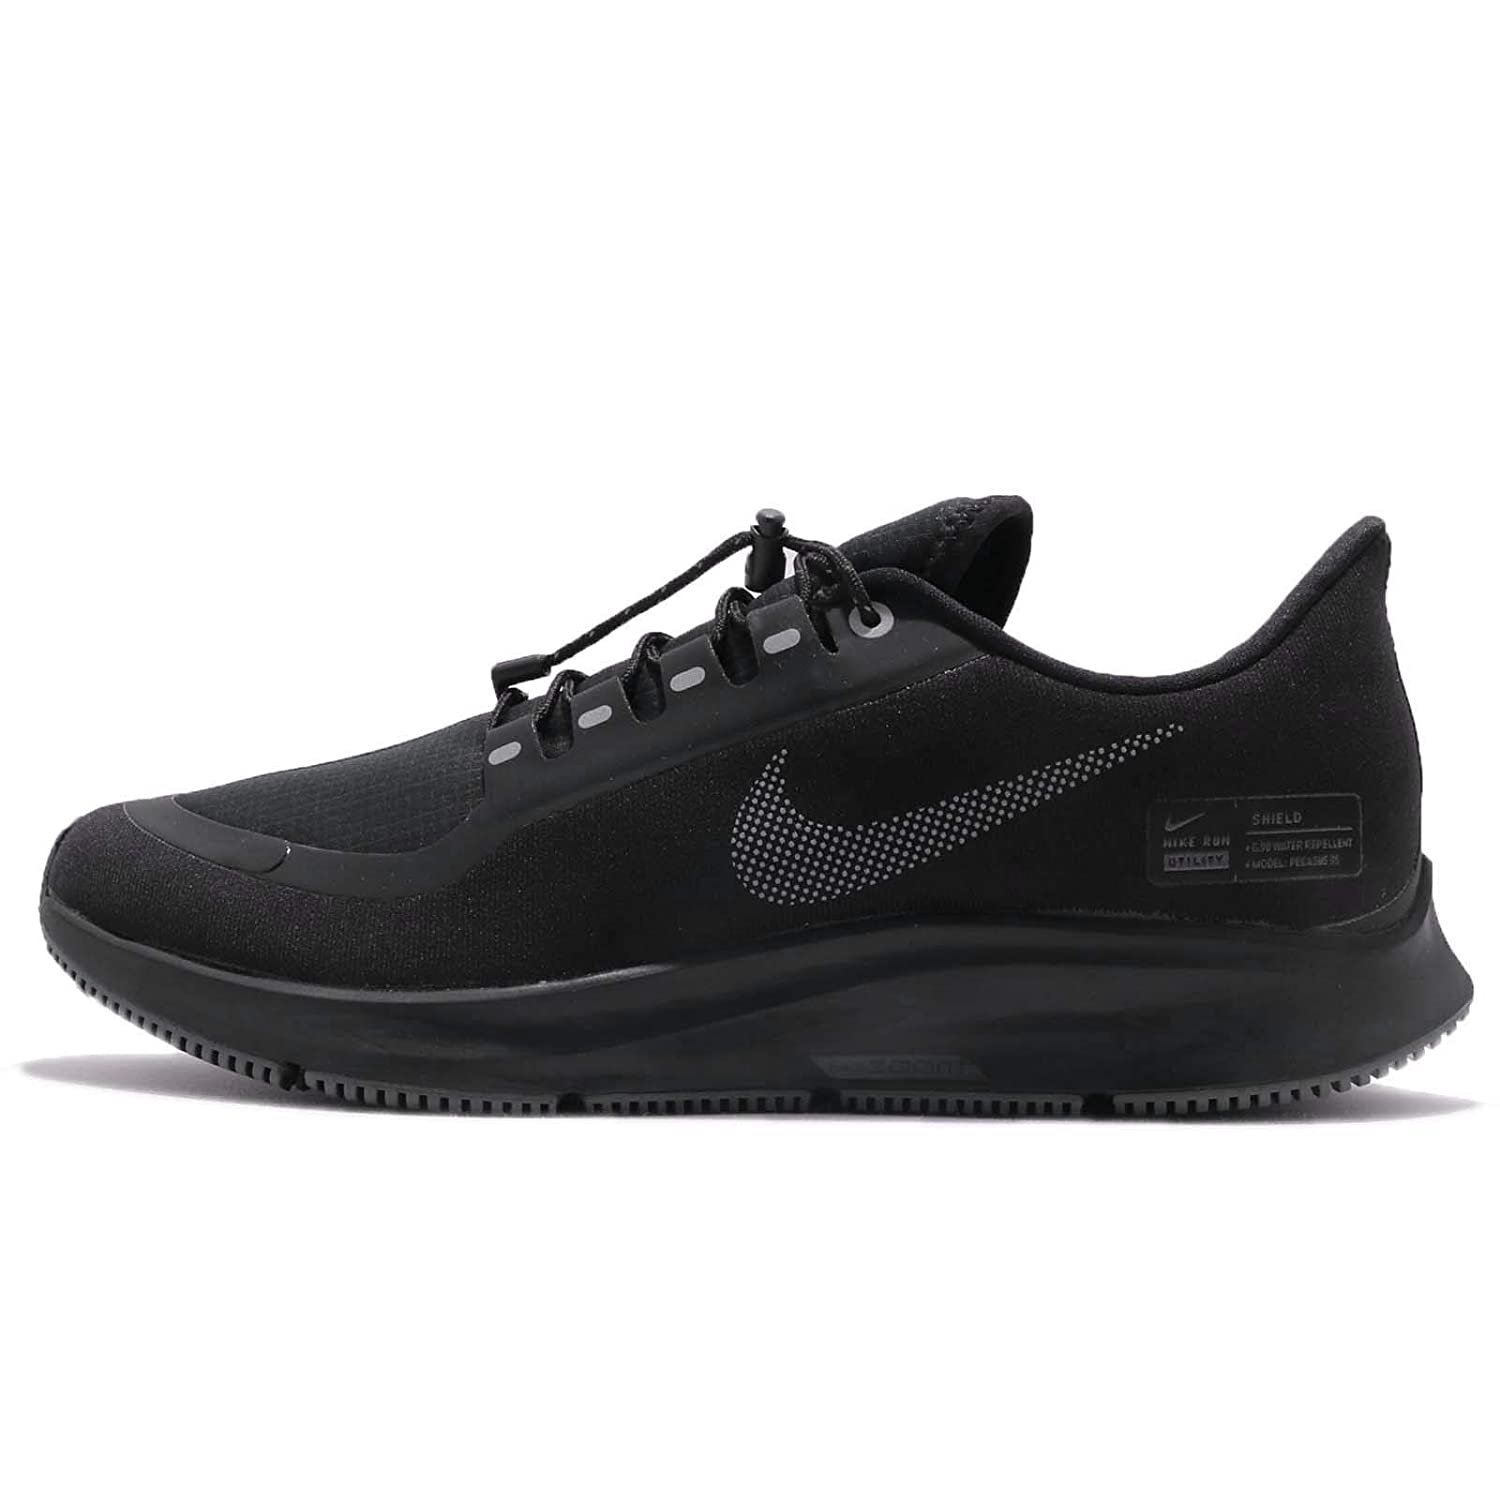 Nike Air Zoom Pegasus 35 Shield Men's Running Shoe Black/Anthracite-Anthracite-Dark Grey 14.0